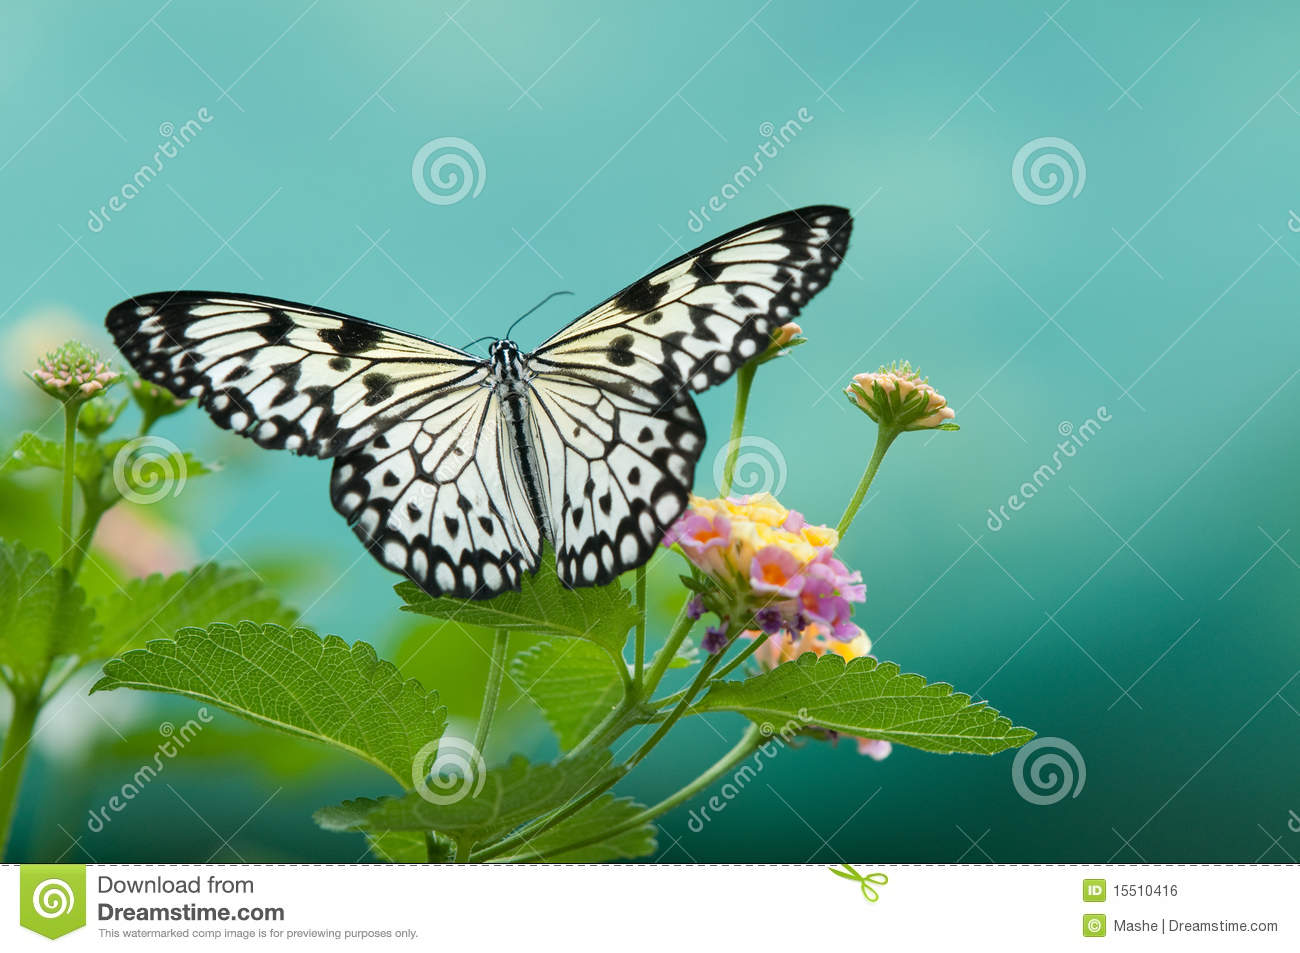 butterflies on flowers royalty free stock image image 15510416